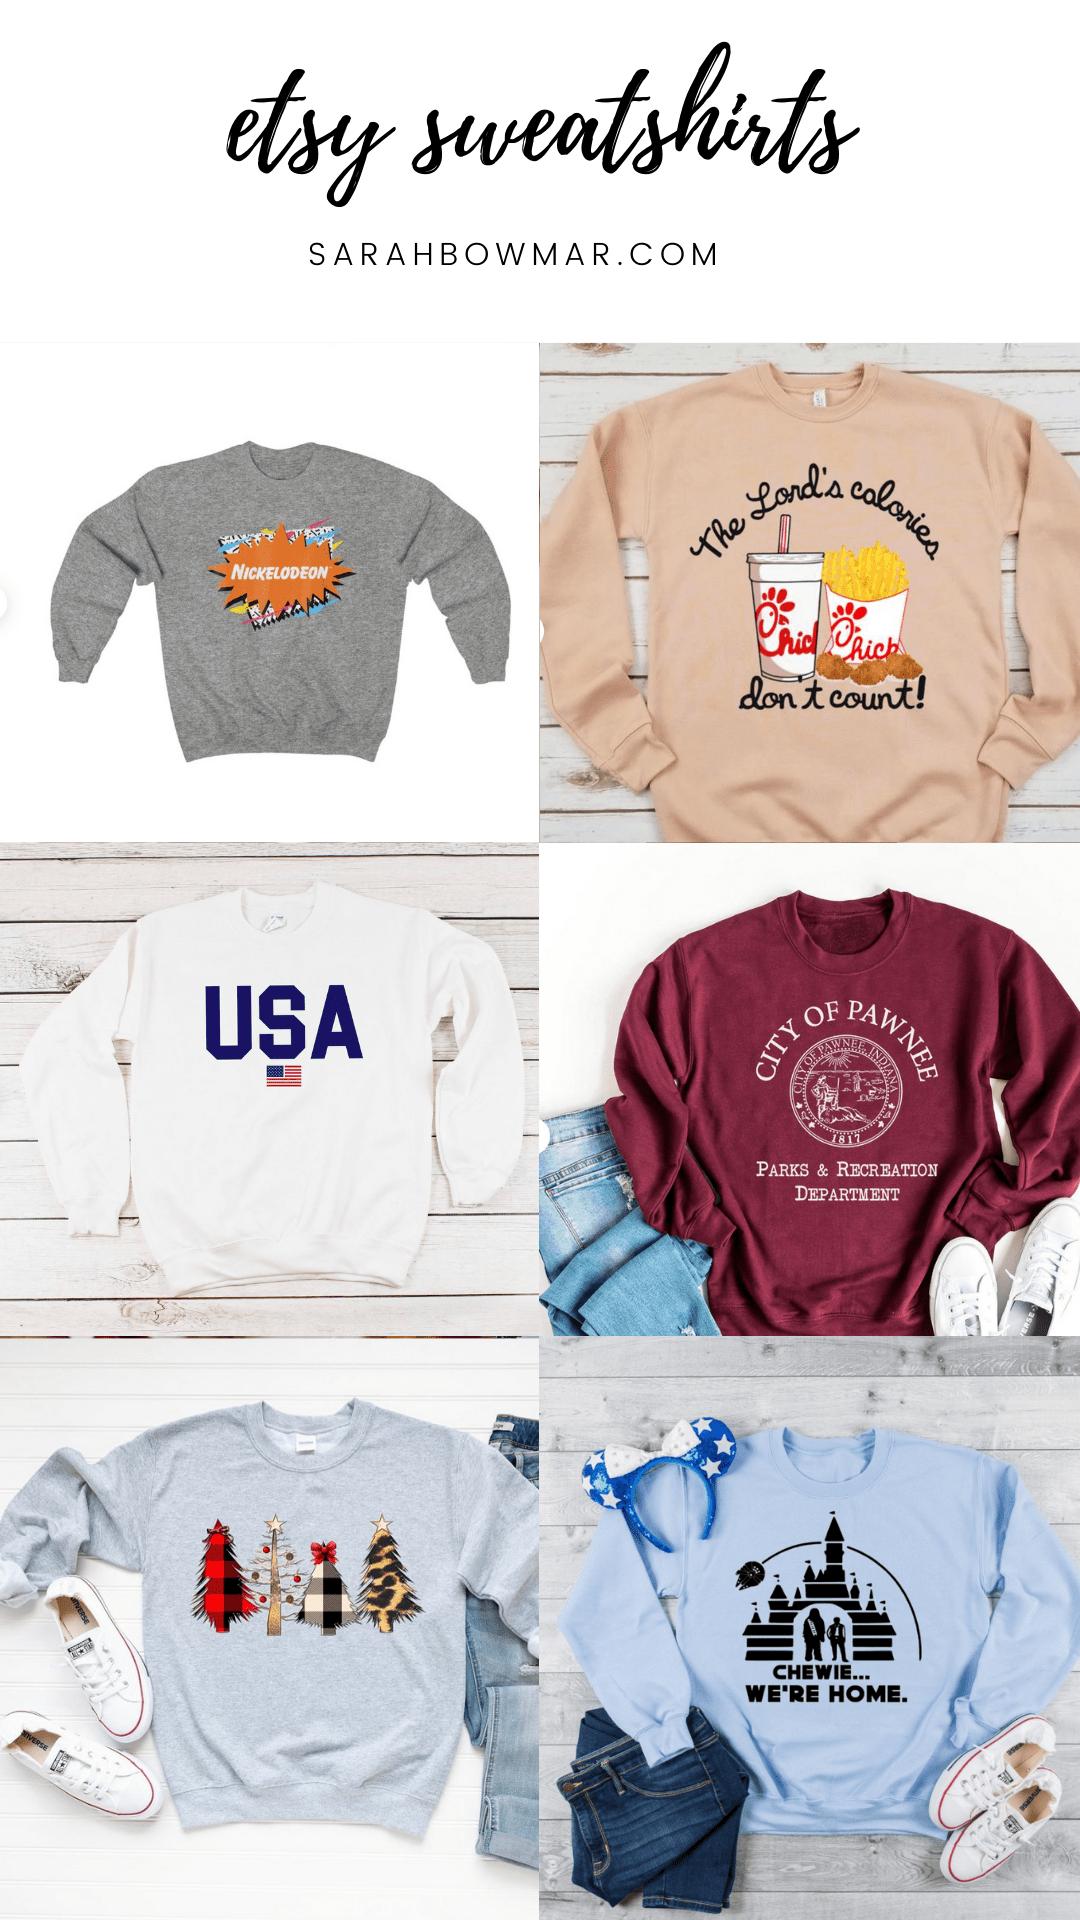 Sarah Bowmar Etsy Sweatshirt Favorites List